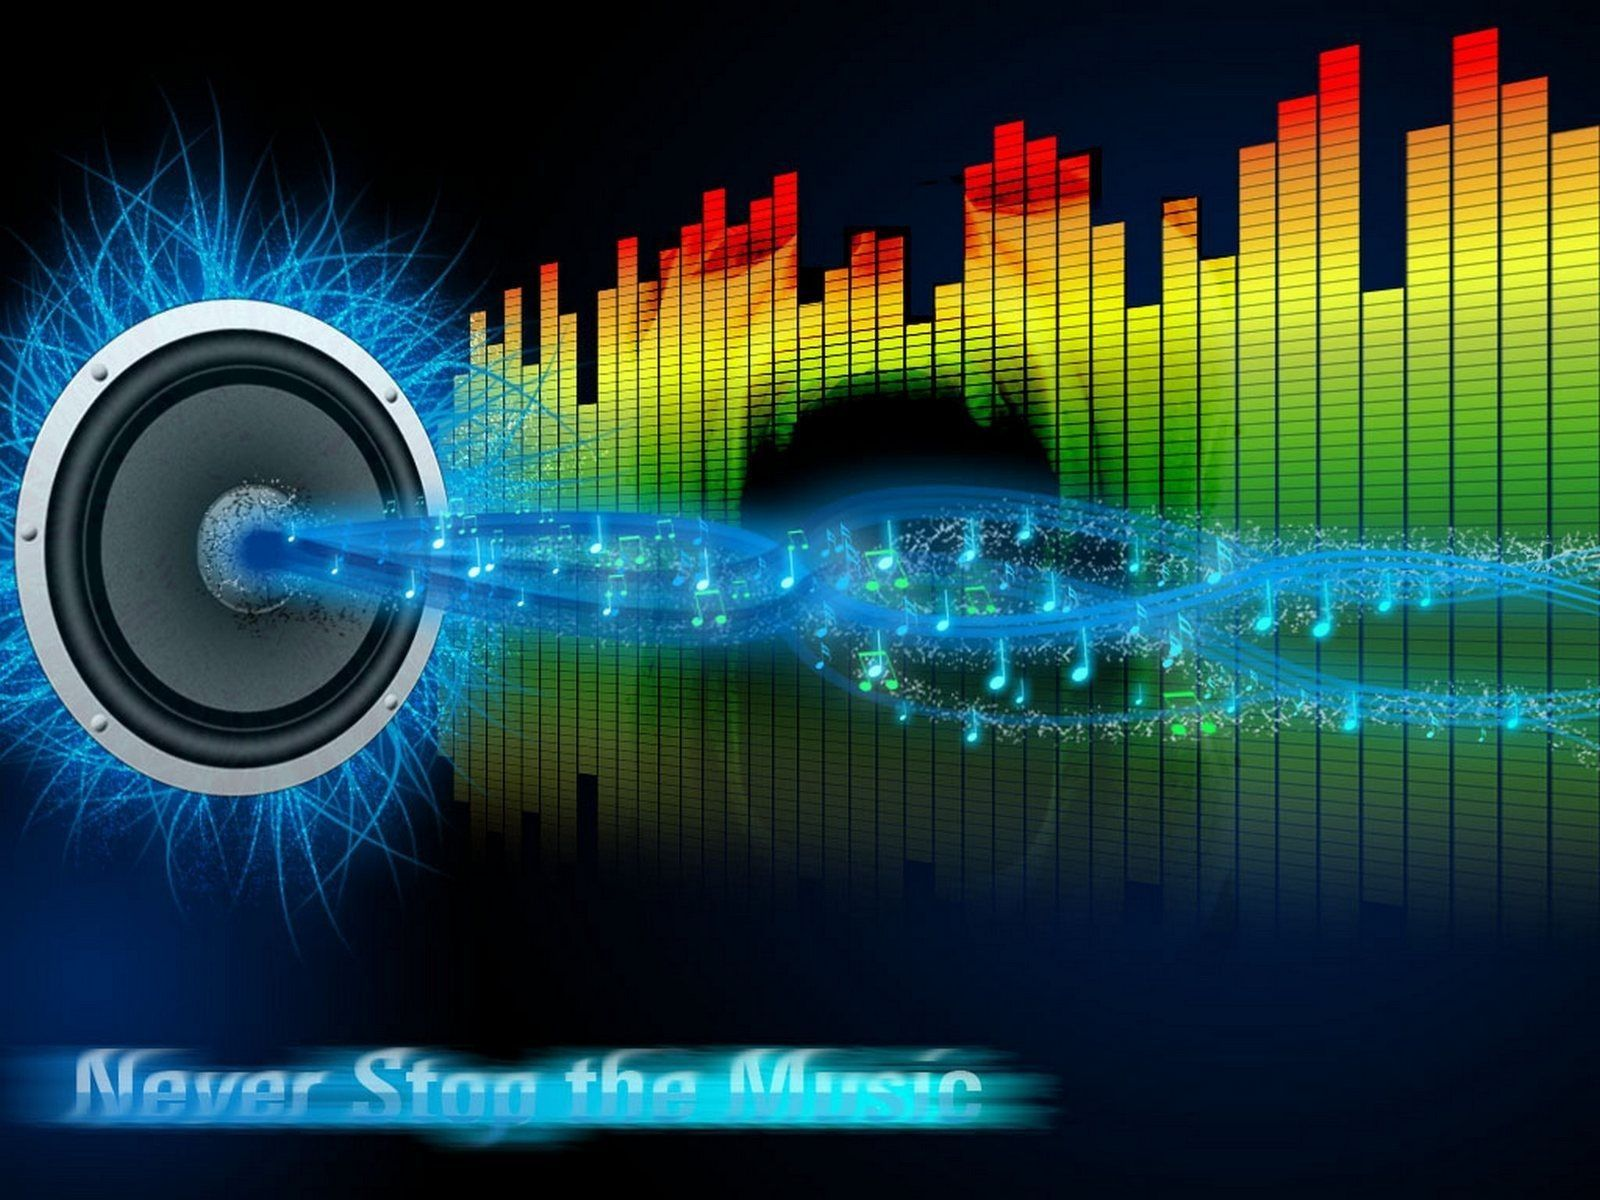 Download Cool Backgrounds Music Cool Music Background Cool Music Background Royalty Free Download M Music Wallpaper Music Notes Background Music Backgrounds